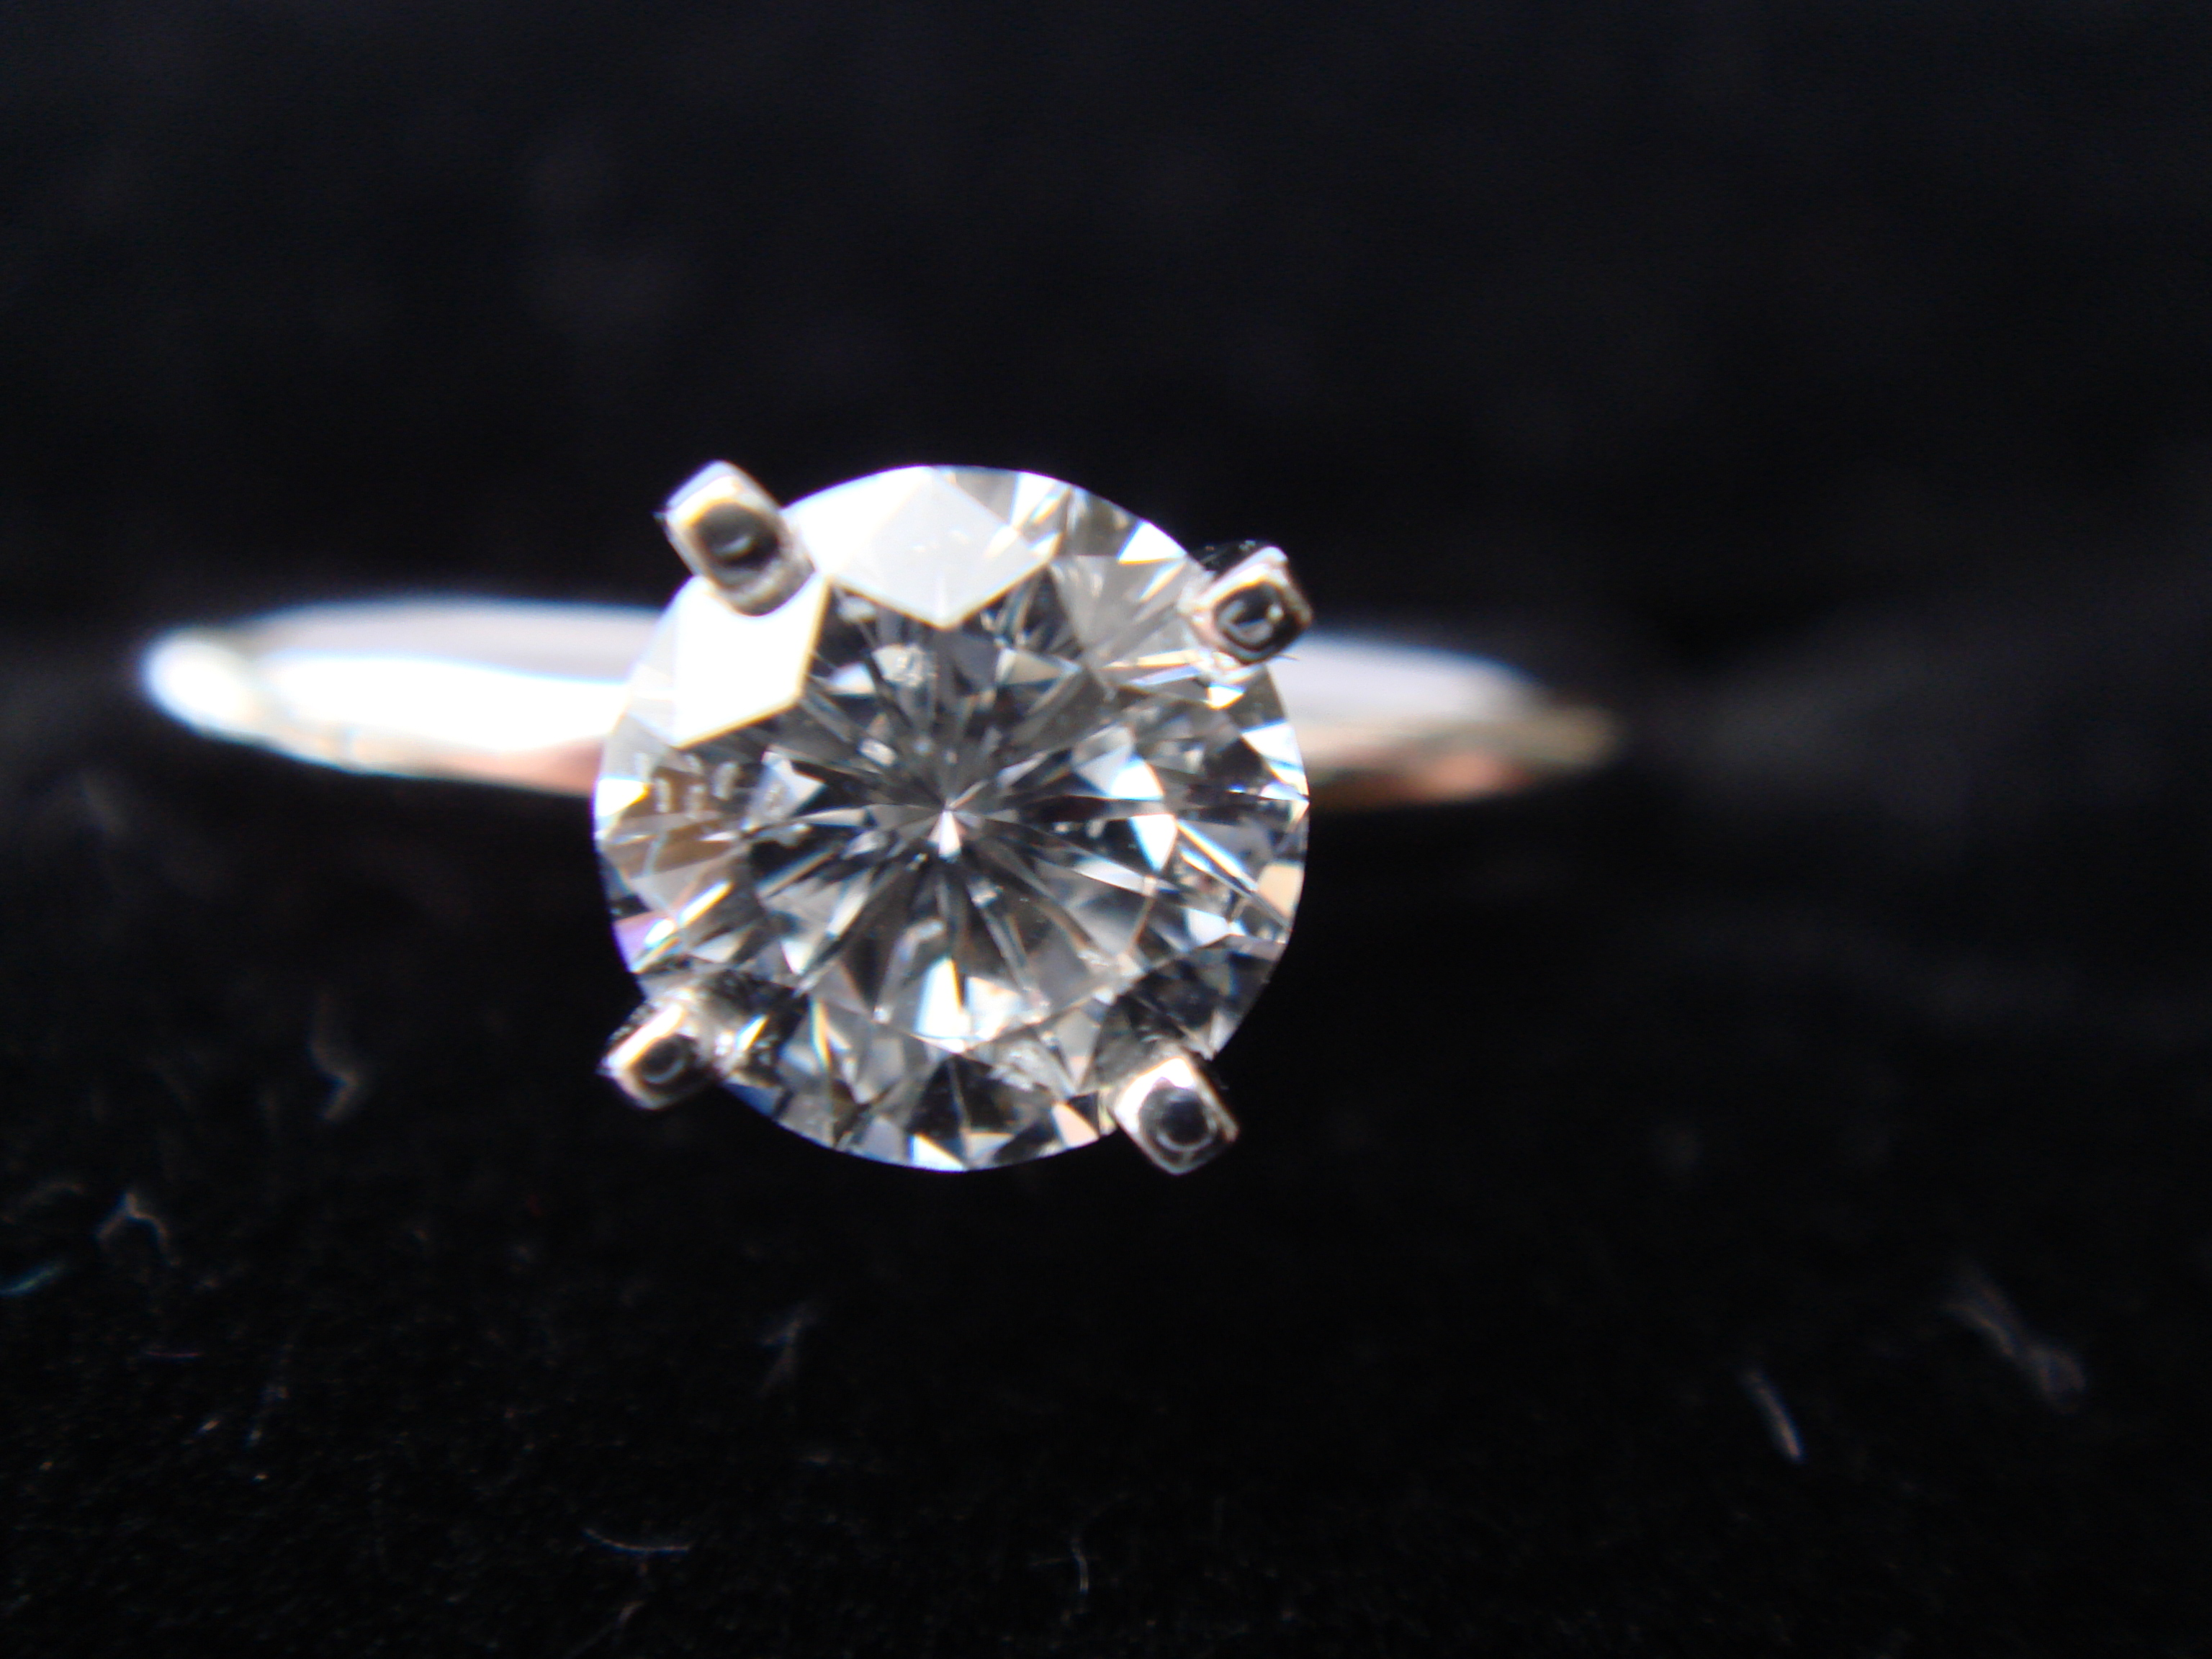 LEO Diamond solitaire, Round